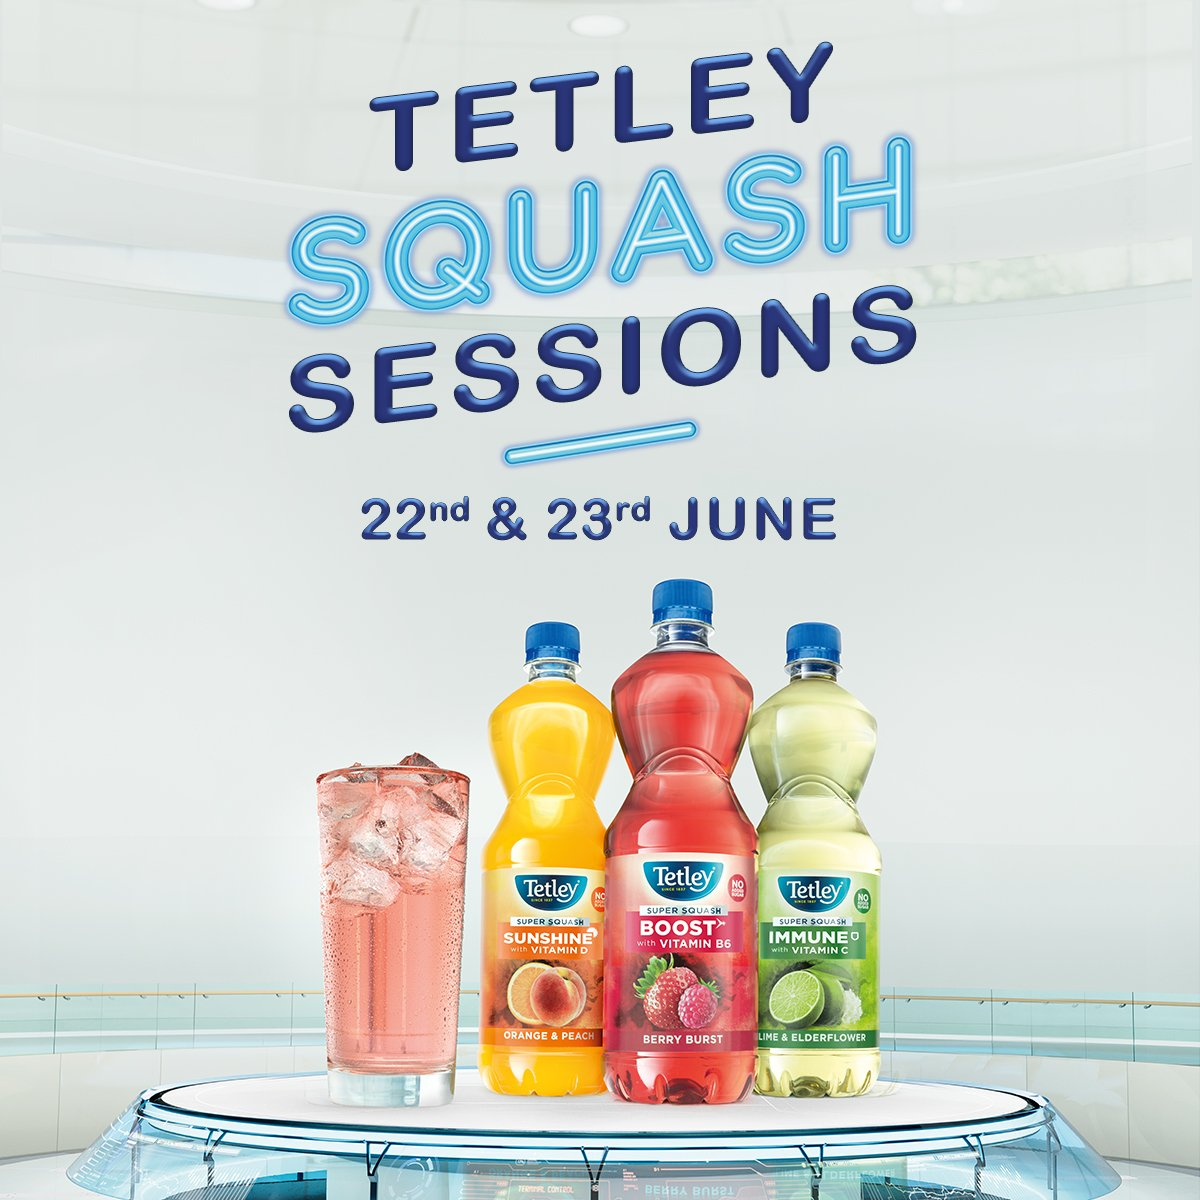 In need of a vitamin boost just in time for summer? Get your tickets to London's first Squash Sessions featuring Soul Sisters Fitness and @RHNutrition and plenty of vitamin boosting treats throughout the day! http://bit.ly/2JOEkpm#TetleySquashSessions …